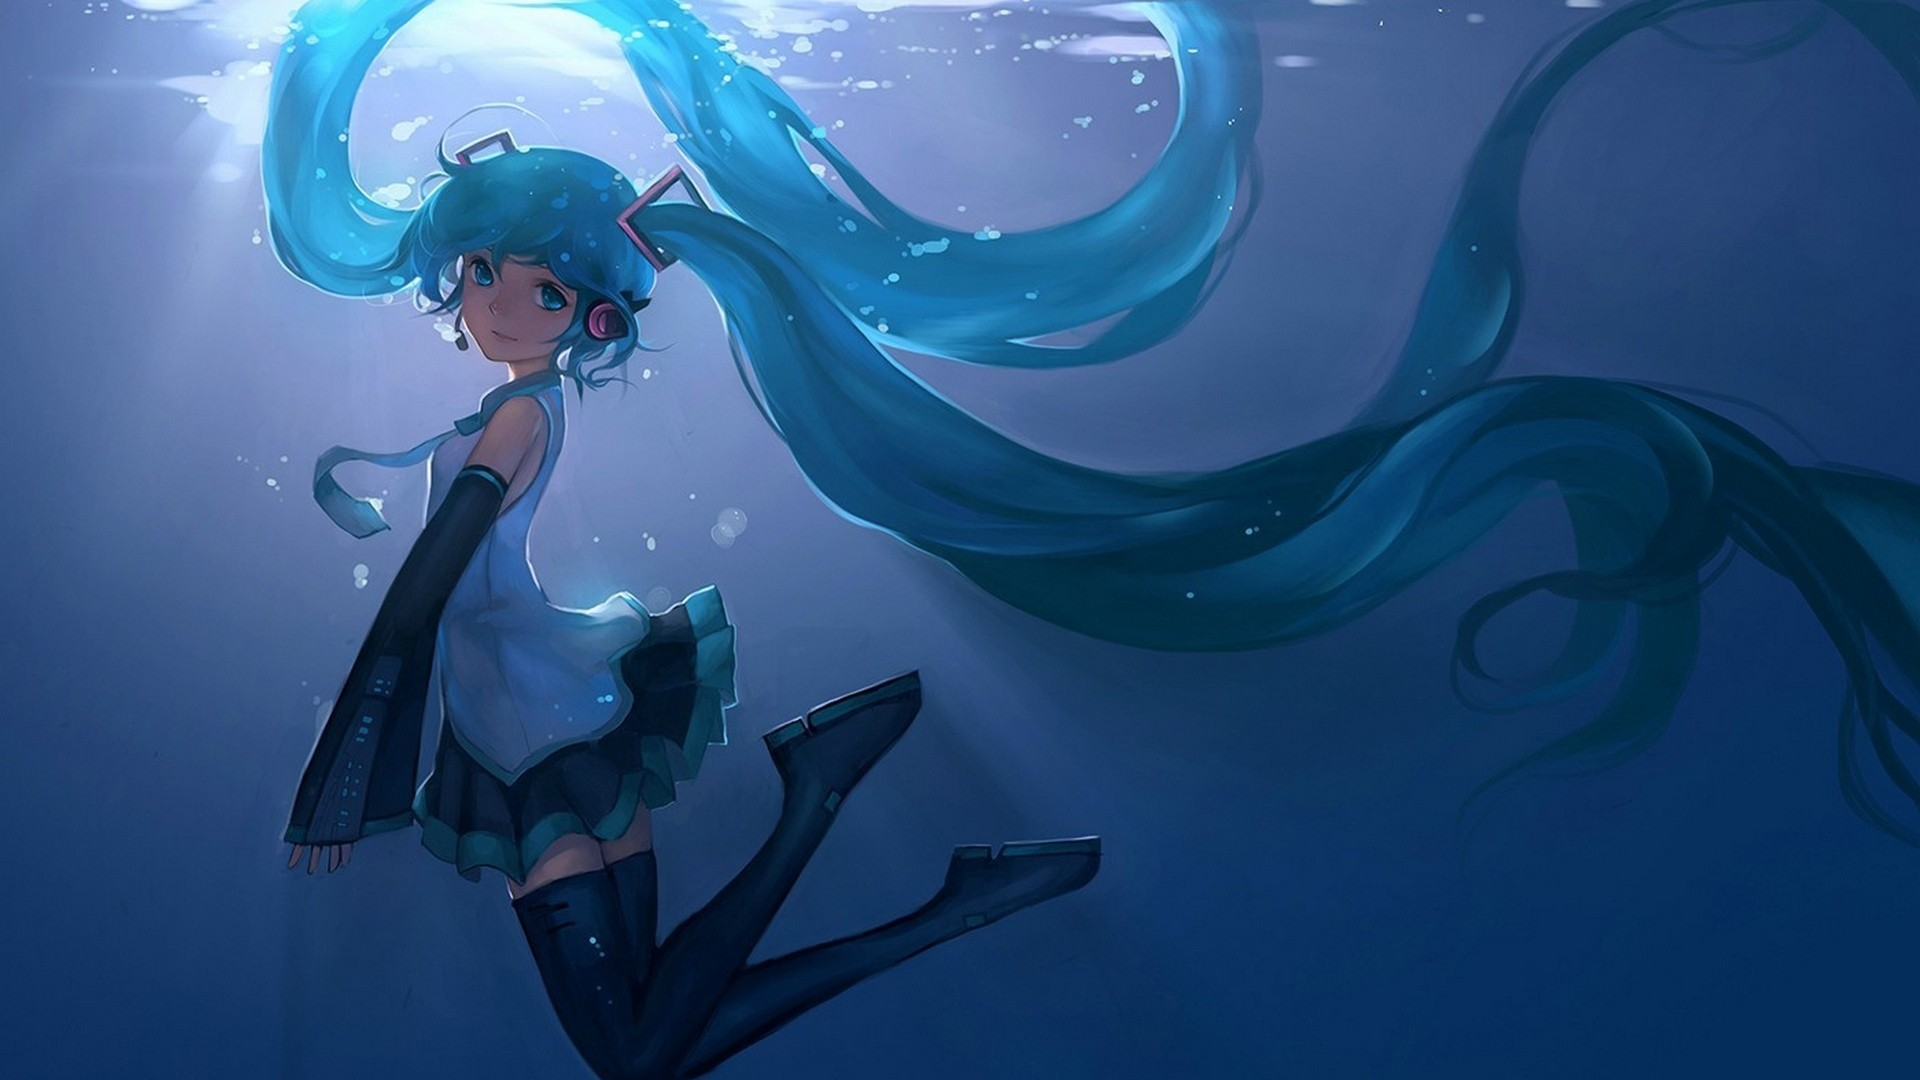 Falling Water Wallpaper 1080p Hatsune Miku Wallpaper 74 Images